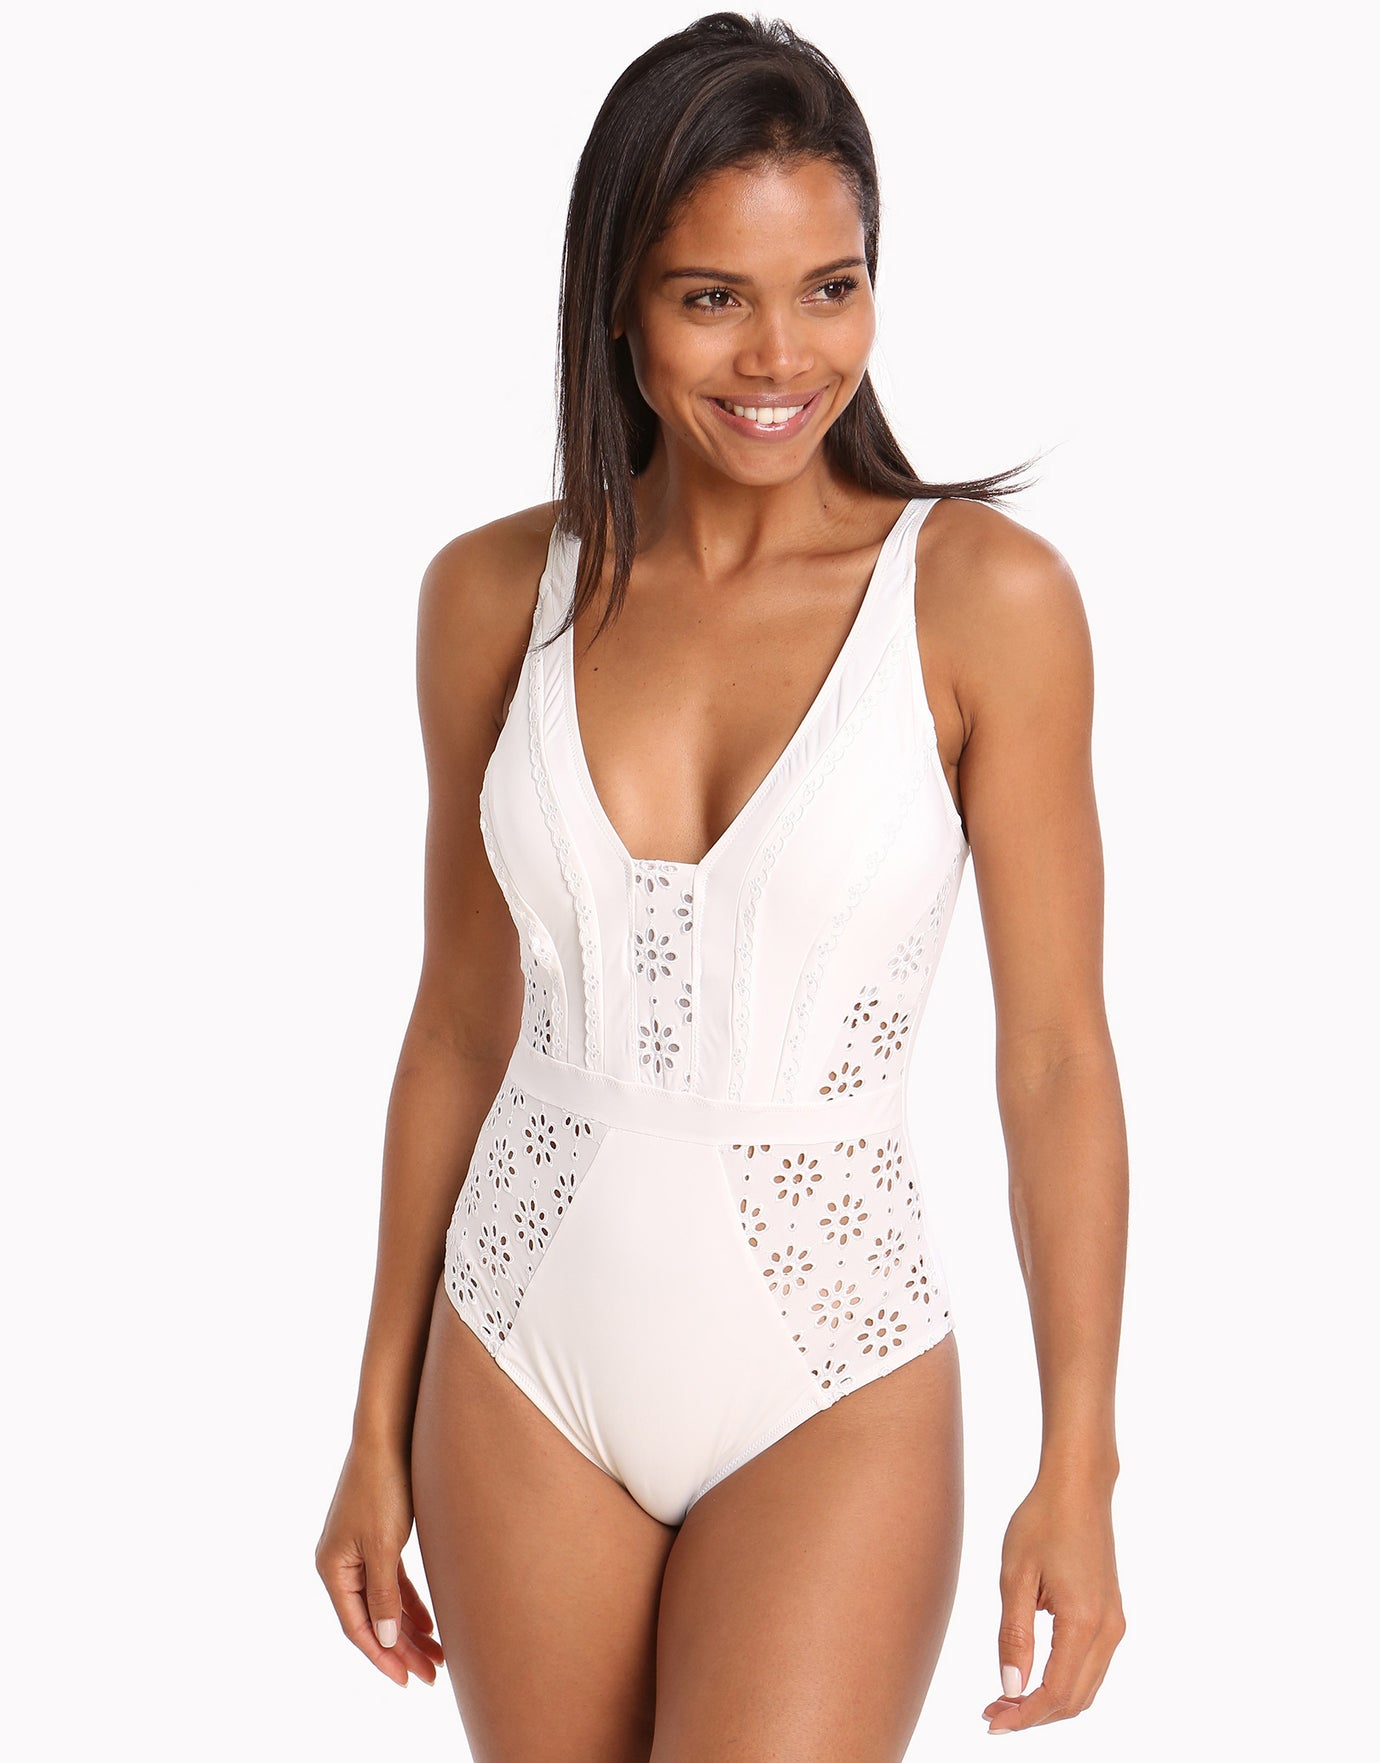 Gottex Profile Kiss and Tell D Cup V Neck Swimsuit - White